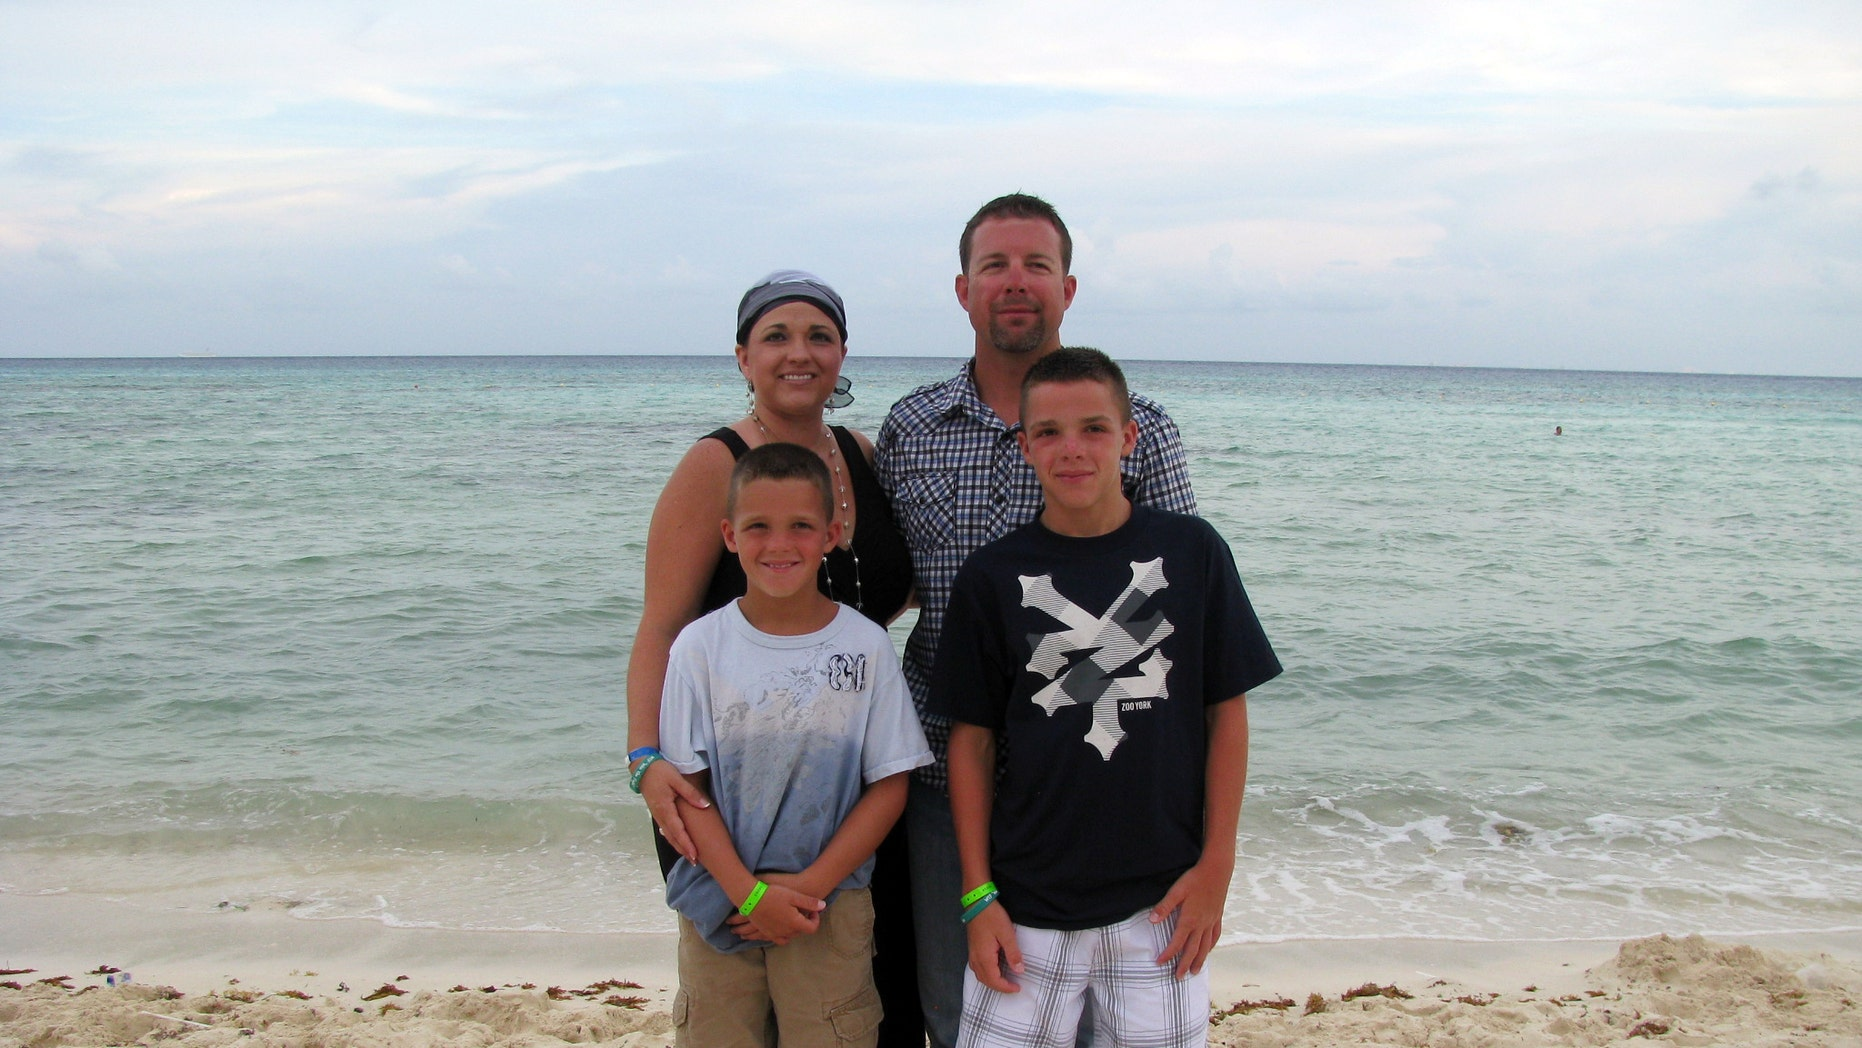 Arrica Wallace with her husband, Matthew, and sons Marccus and Mason in Mexico during a vacation. Since receiving immune therapy 22 months ago she has shown no sign of cancer. (AP Photo/Courtesy Arrica Wallace)